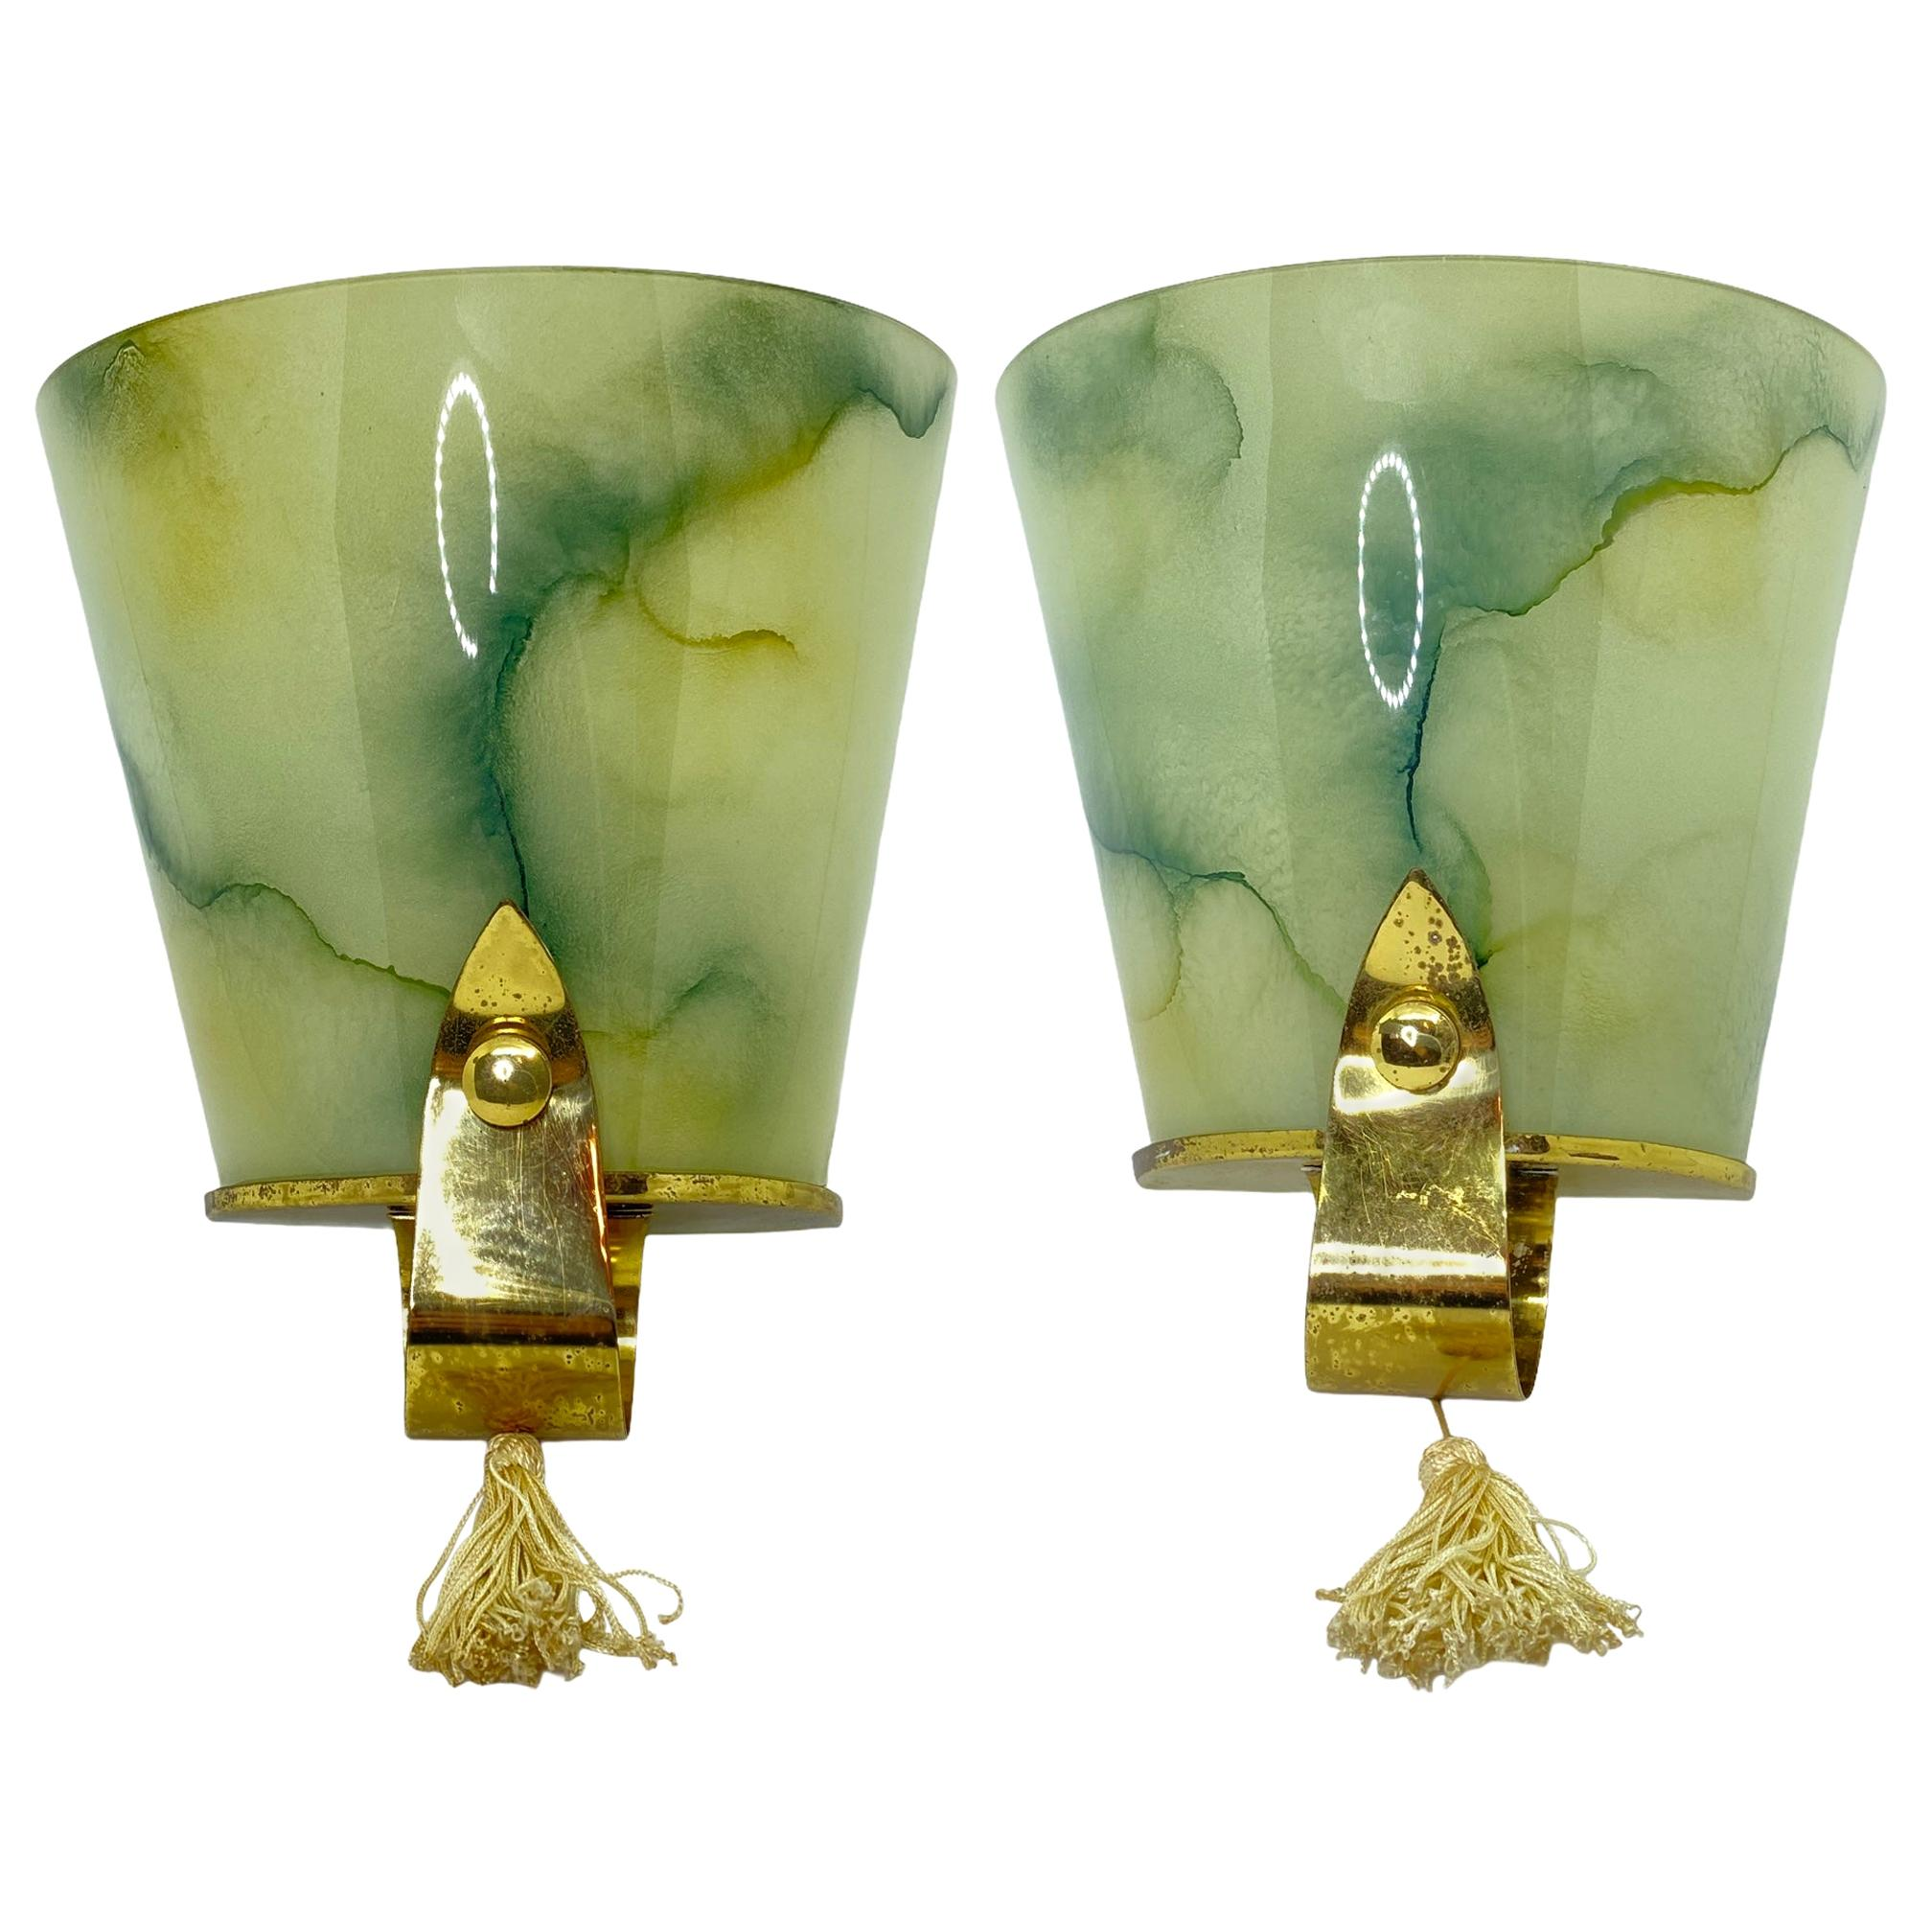 Pair of Art Deco Glass and Brass Sconces Vintage, German, 1930s